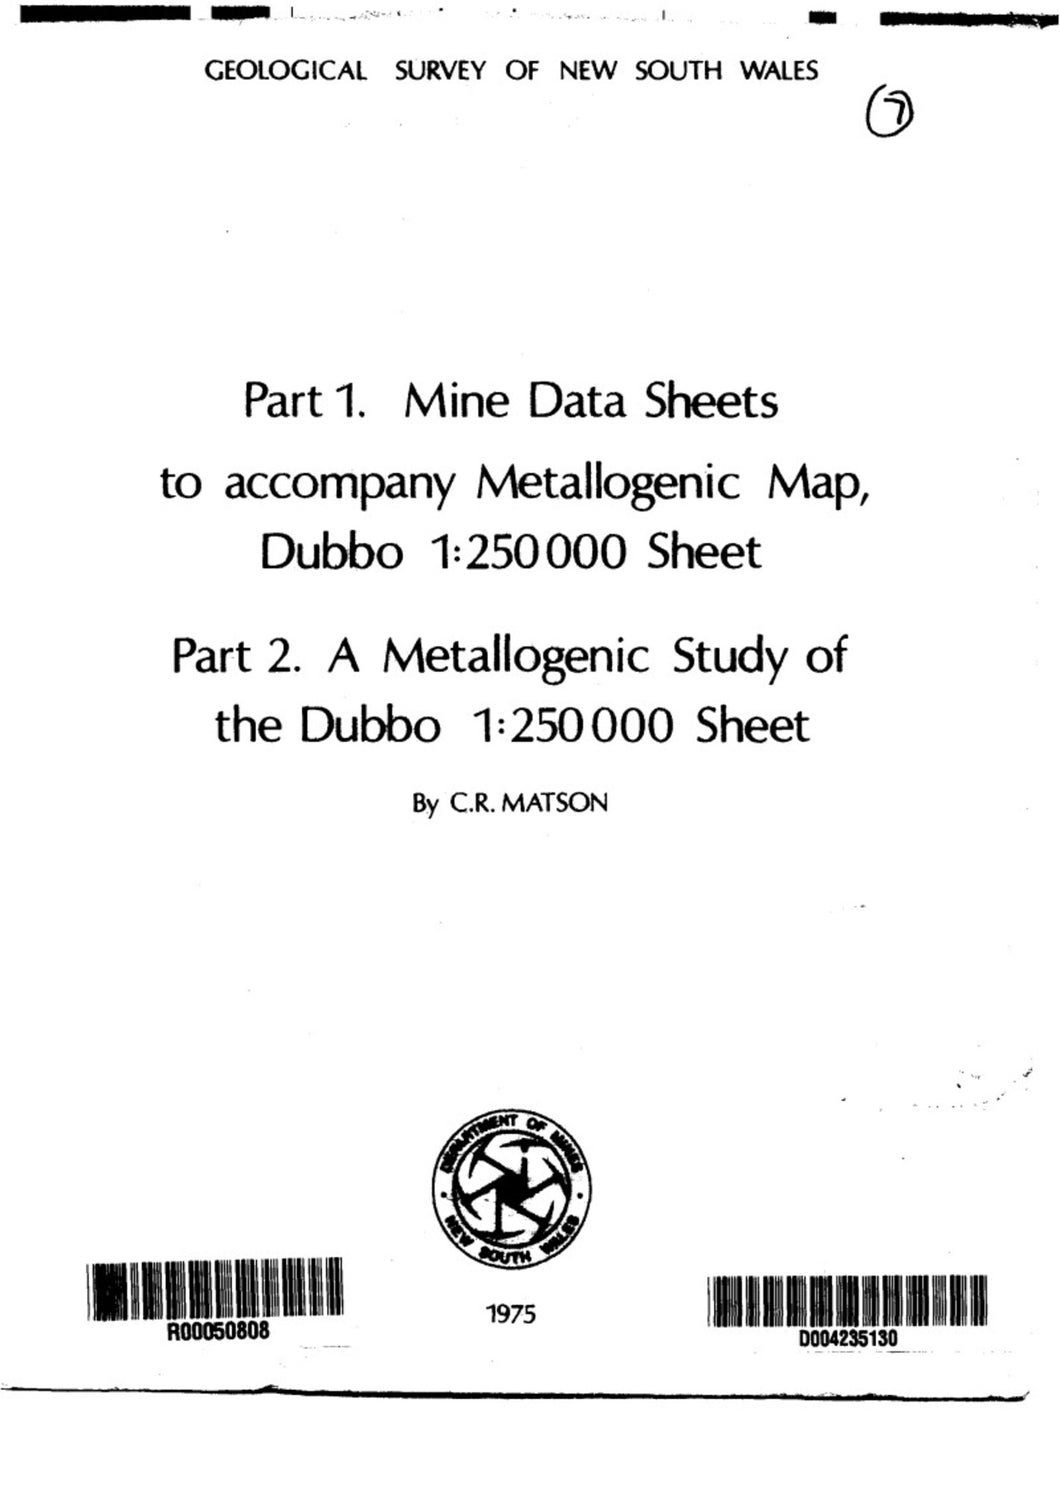 Image of Dubbo Metallogenic Map Explanatory Notes 1975 book cover